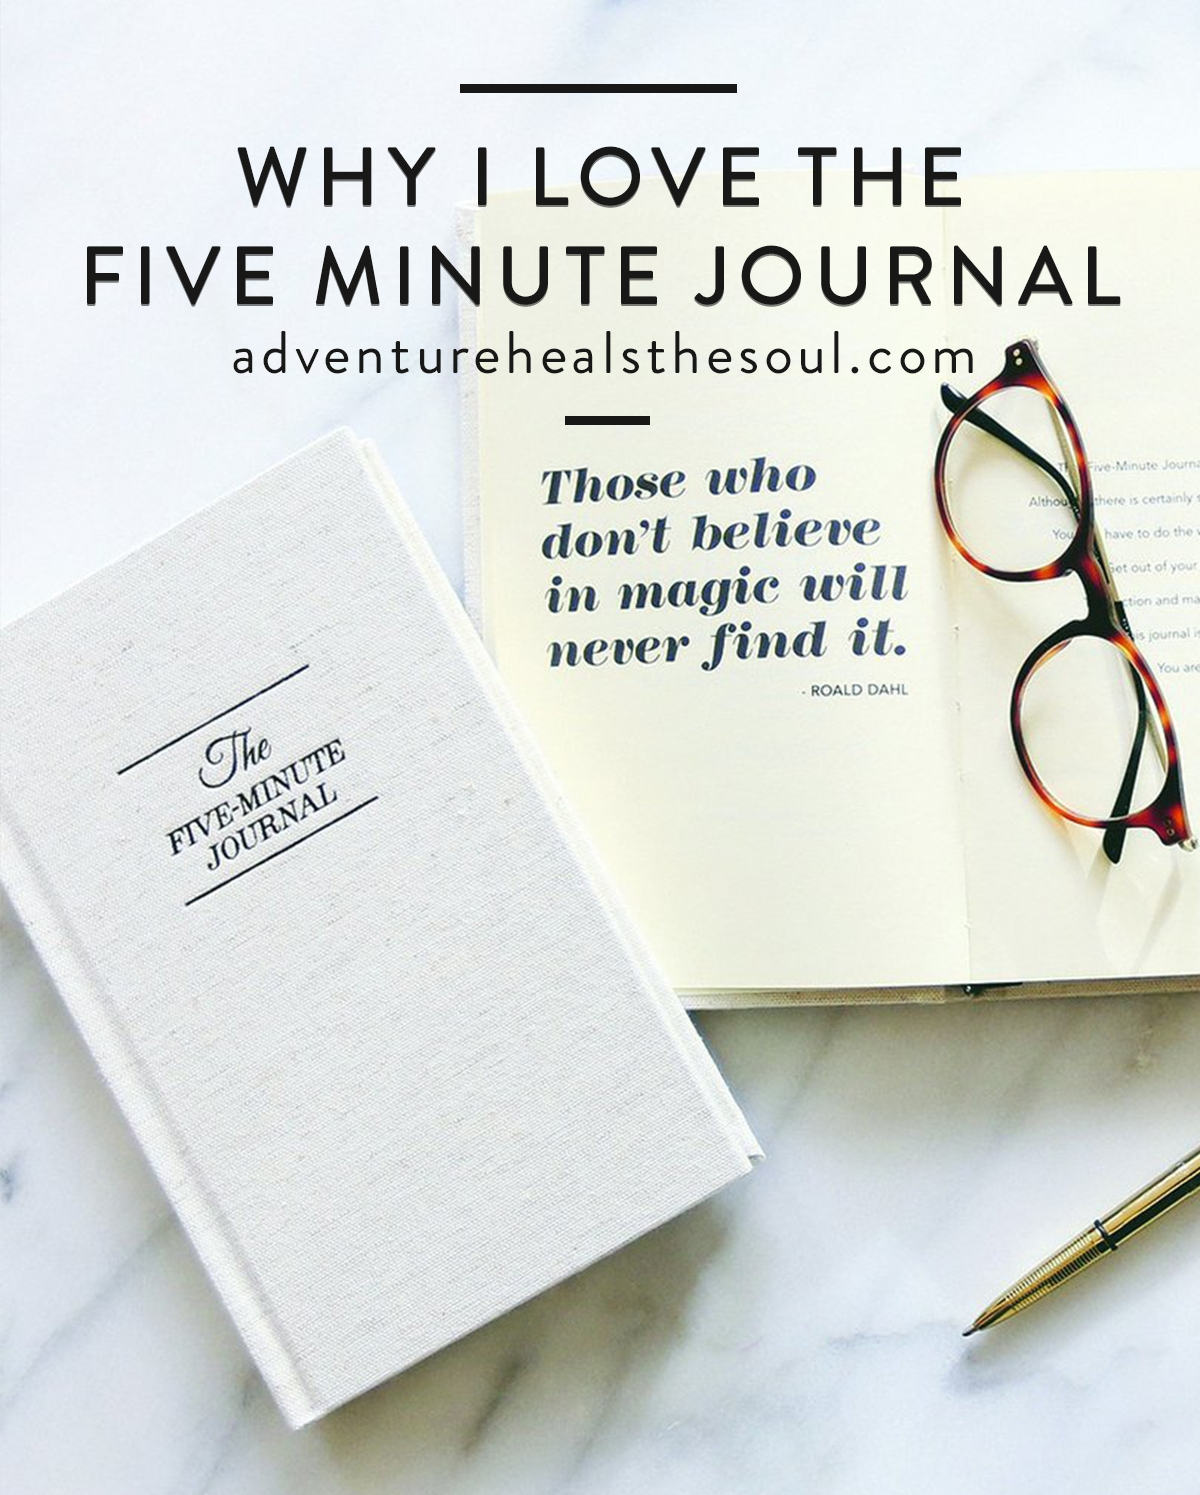 Why I Love The 5 Minute Journal